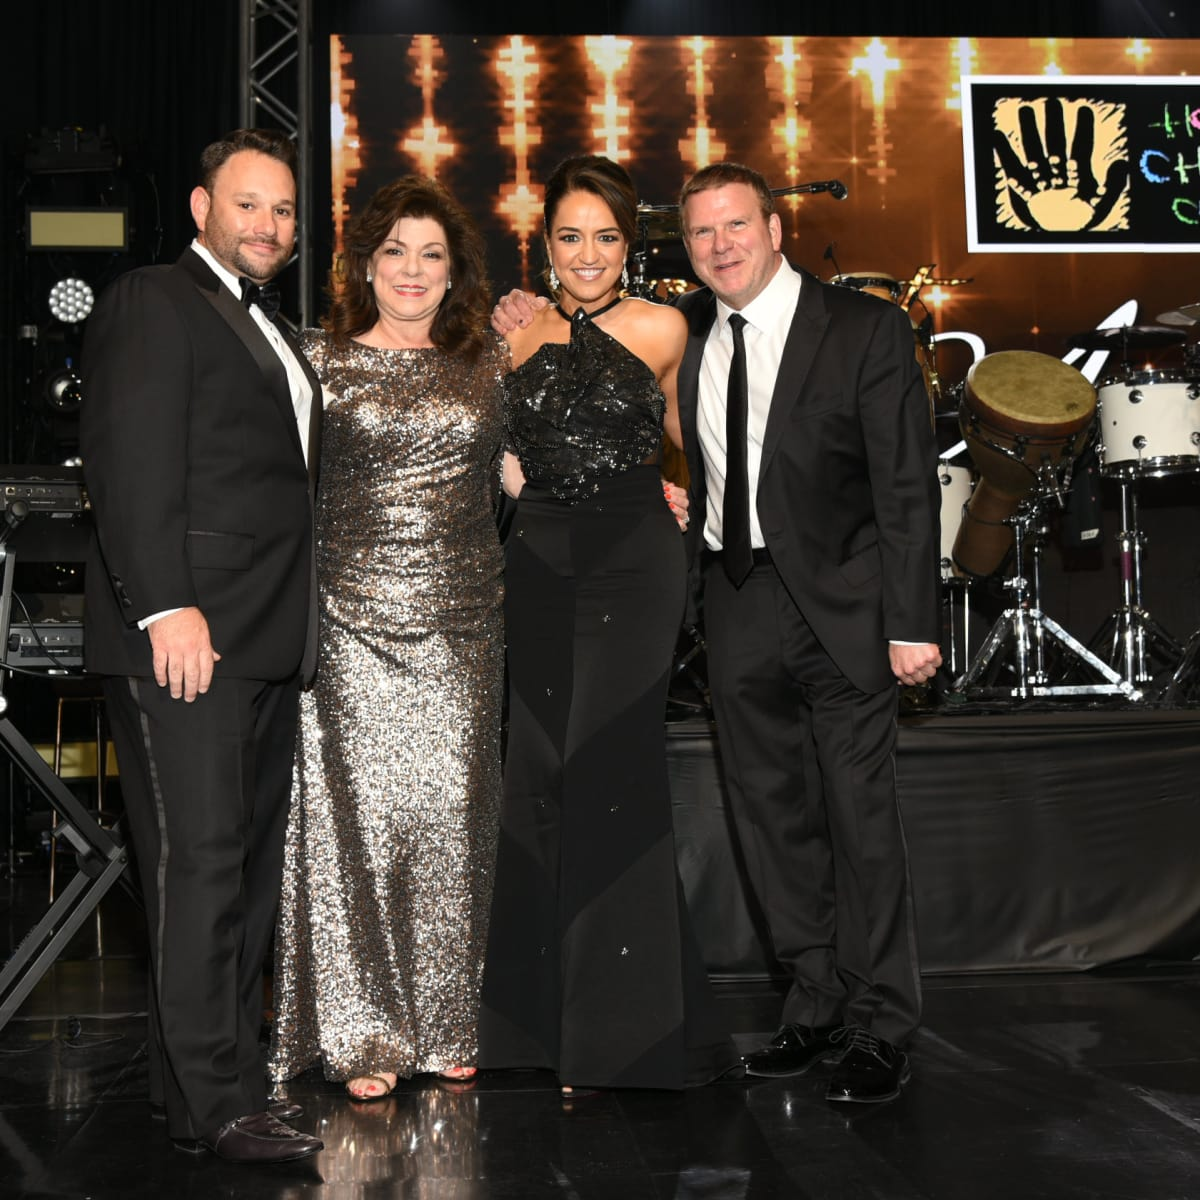 Tommy Kuranoff, Laura Ward, Maria Moncada Alaoui, and Tilman Fertitta